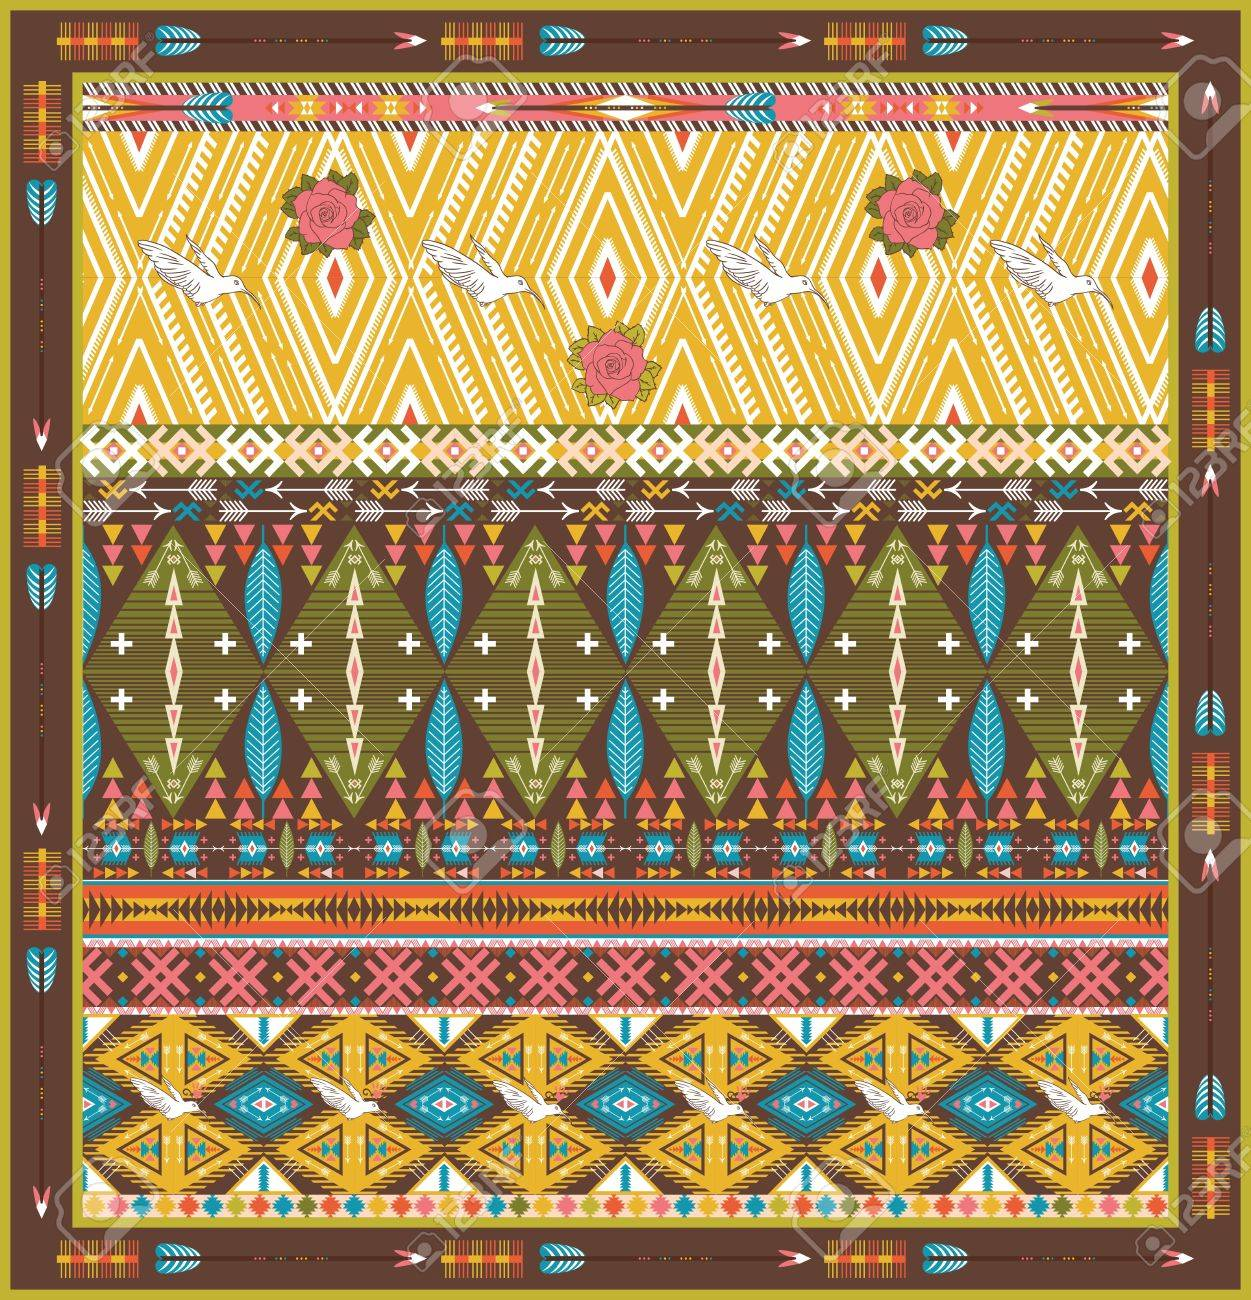 Aztec Tapijt Seamless Colorful Aztec Rug With Birds And Arrow